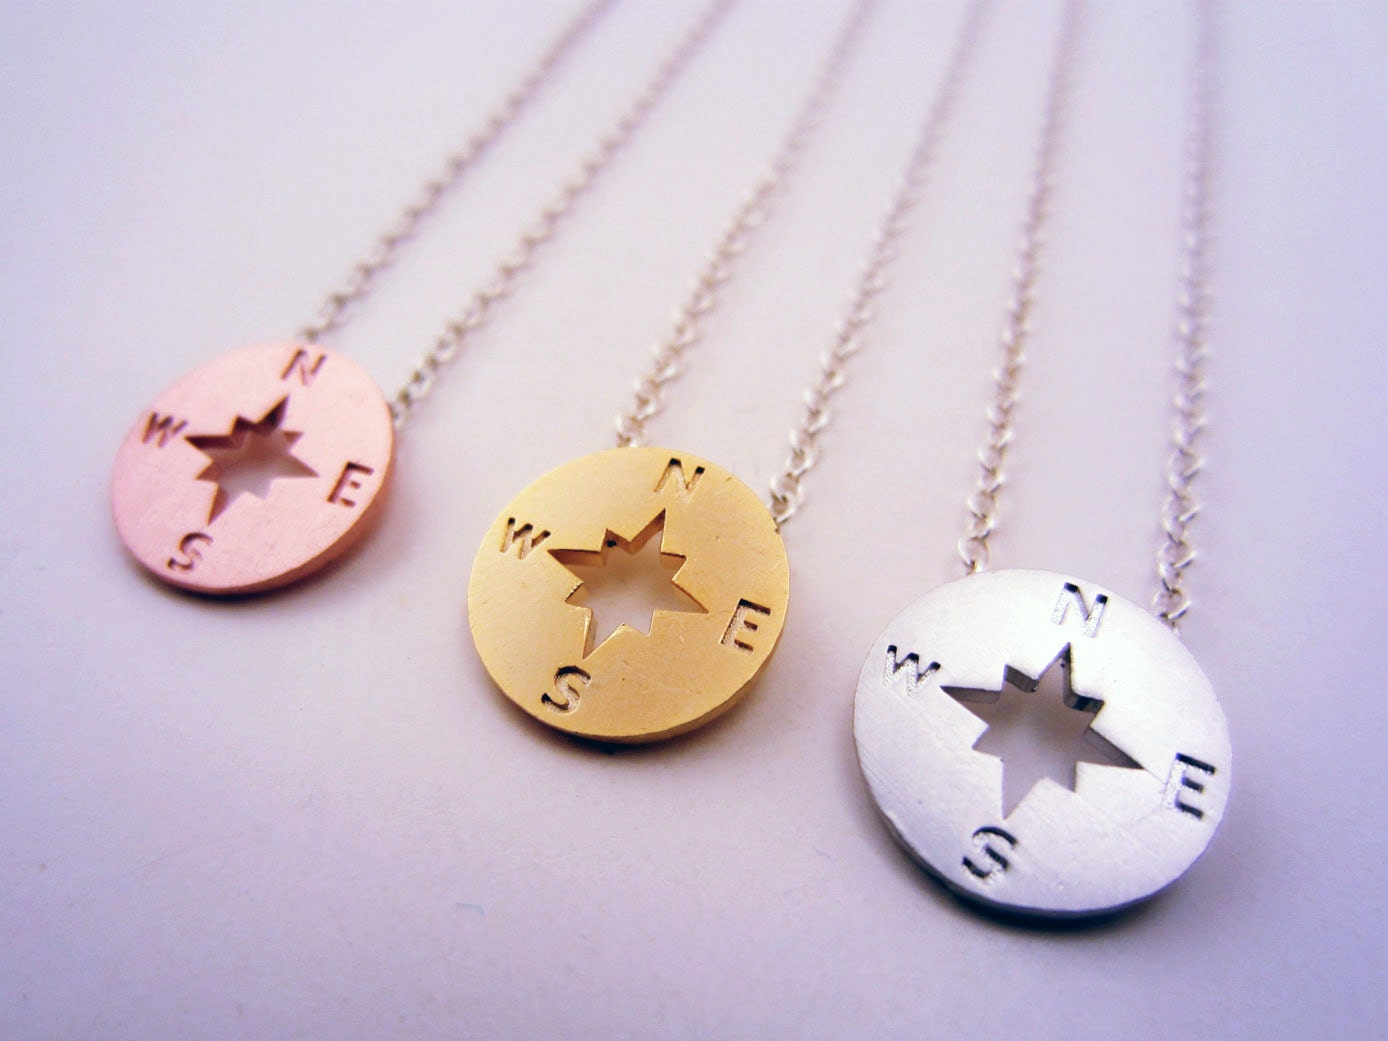 best friend jewelry for 3 3 best friend necklace compass necklace set of 3 or 2 508